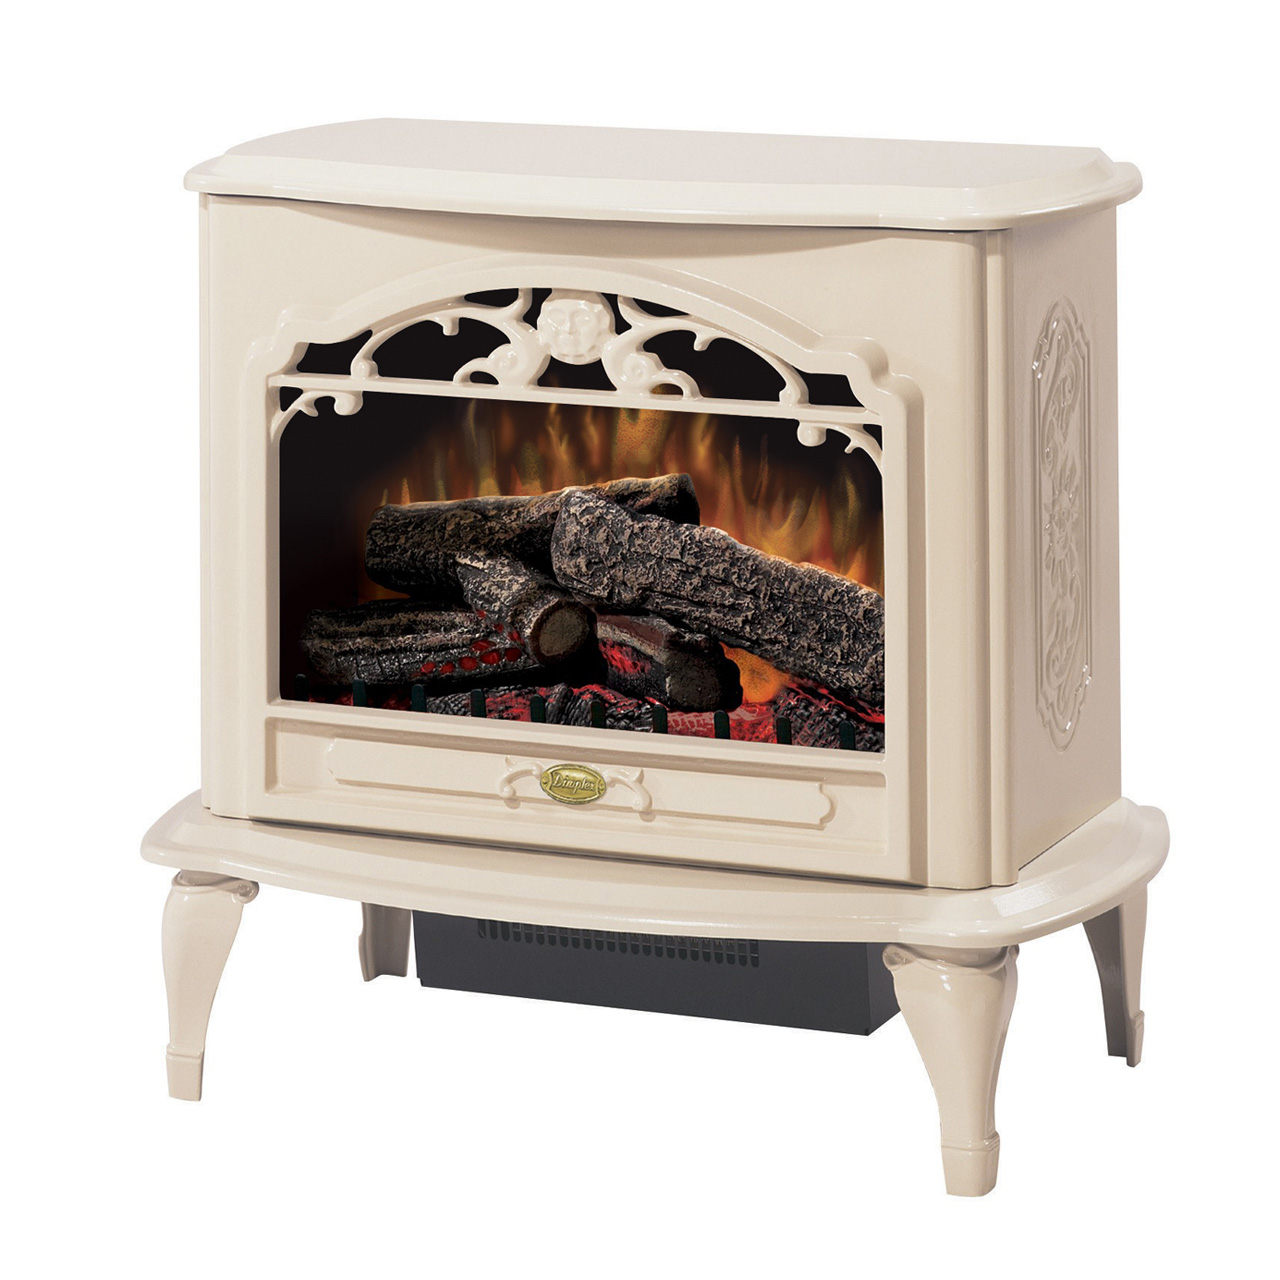 Celeste Electric Stove